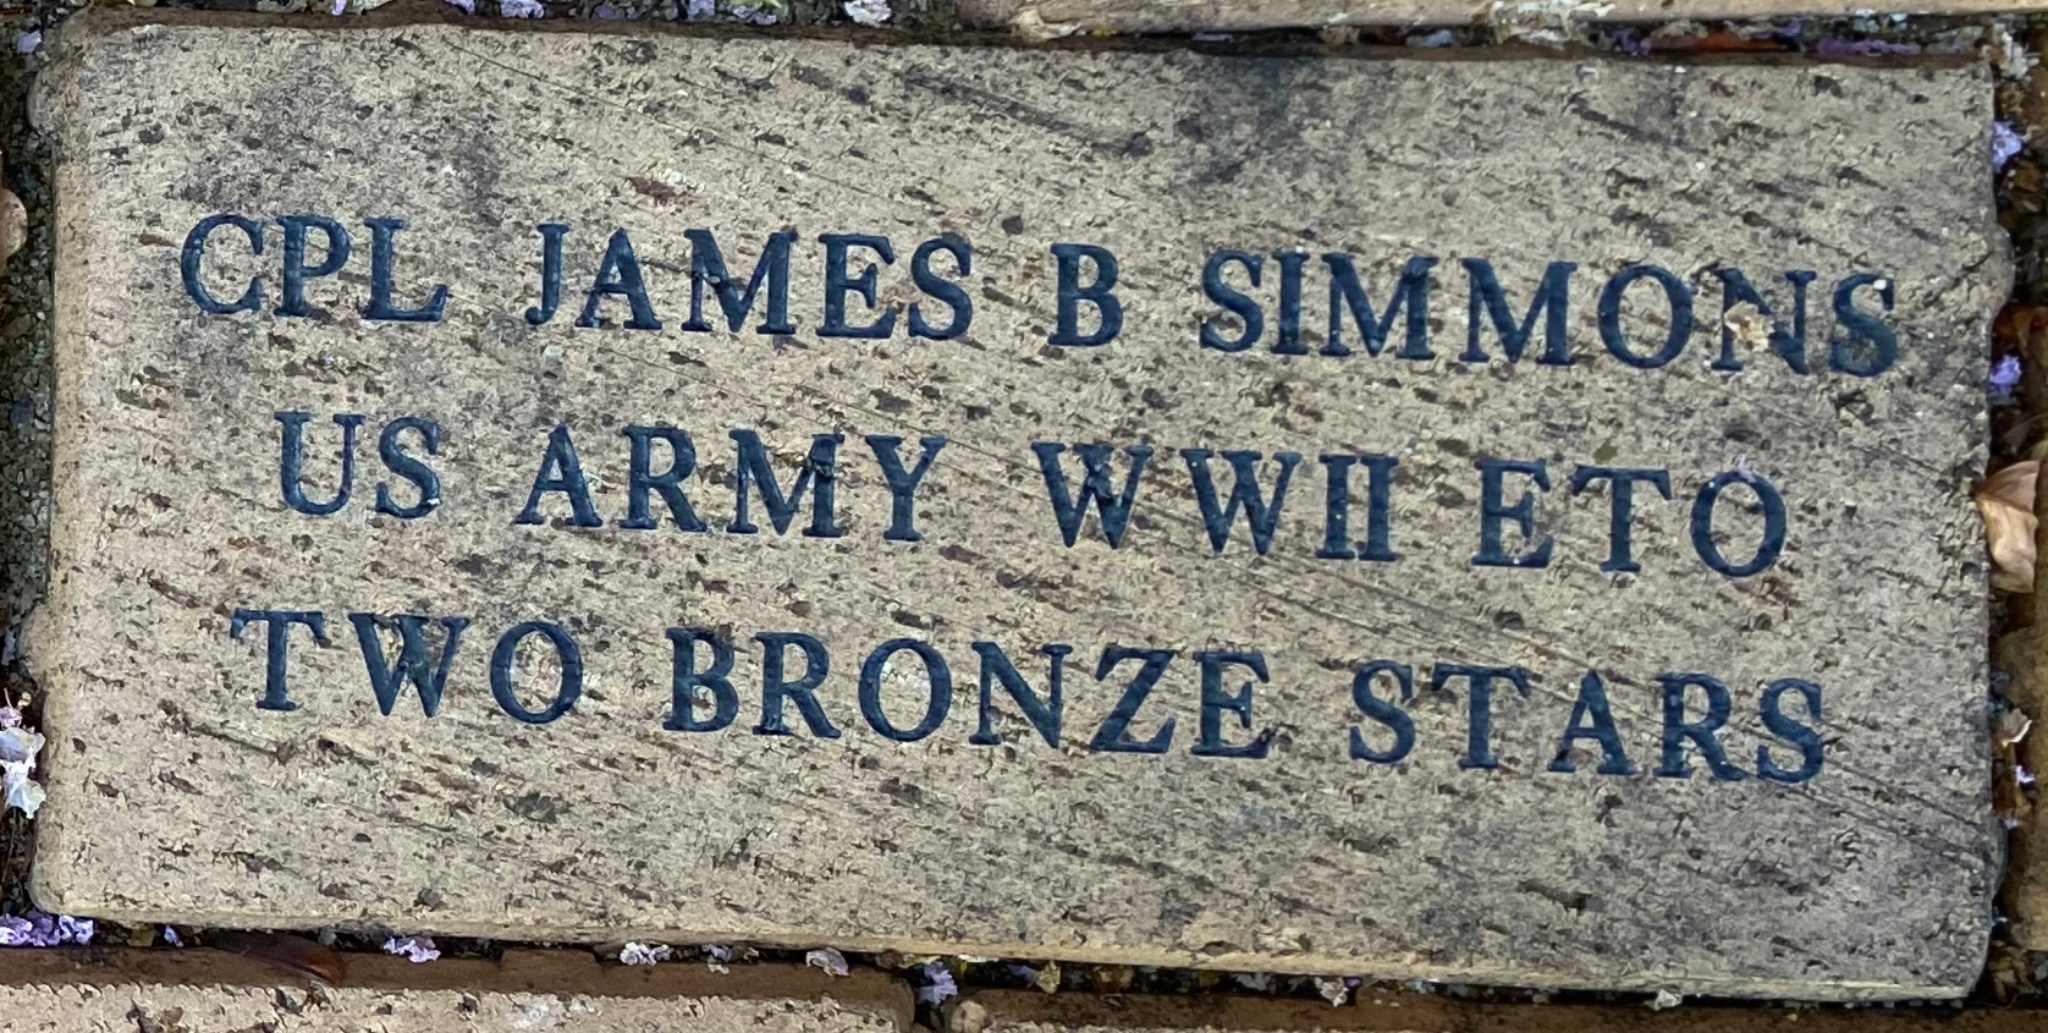 CPL JAMES B. SIMMONS US ARMY WWII ETO TWO BRONZE STARS